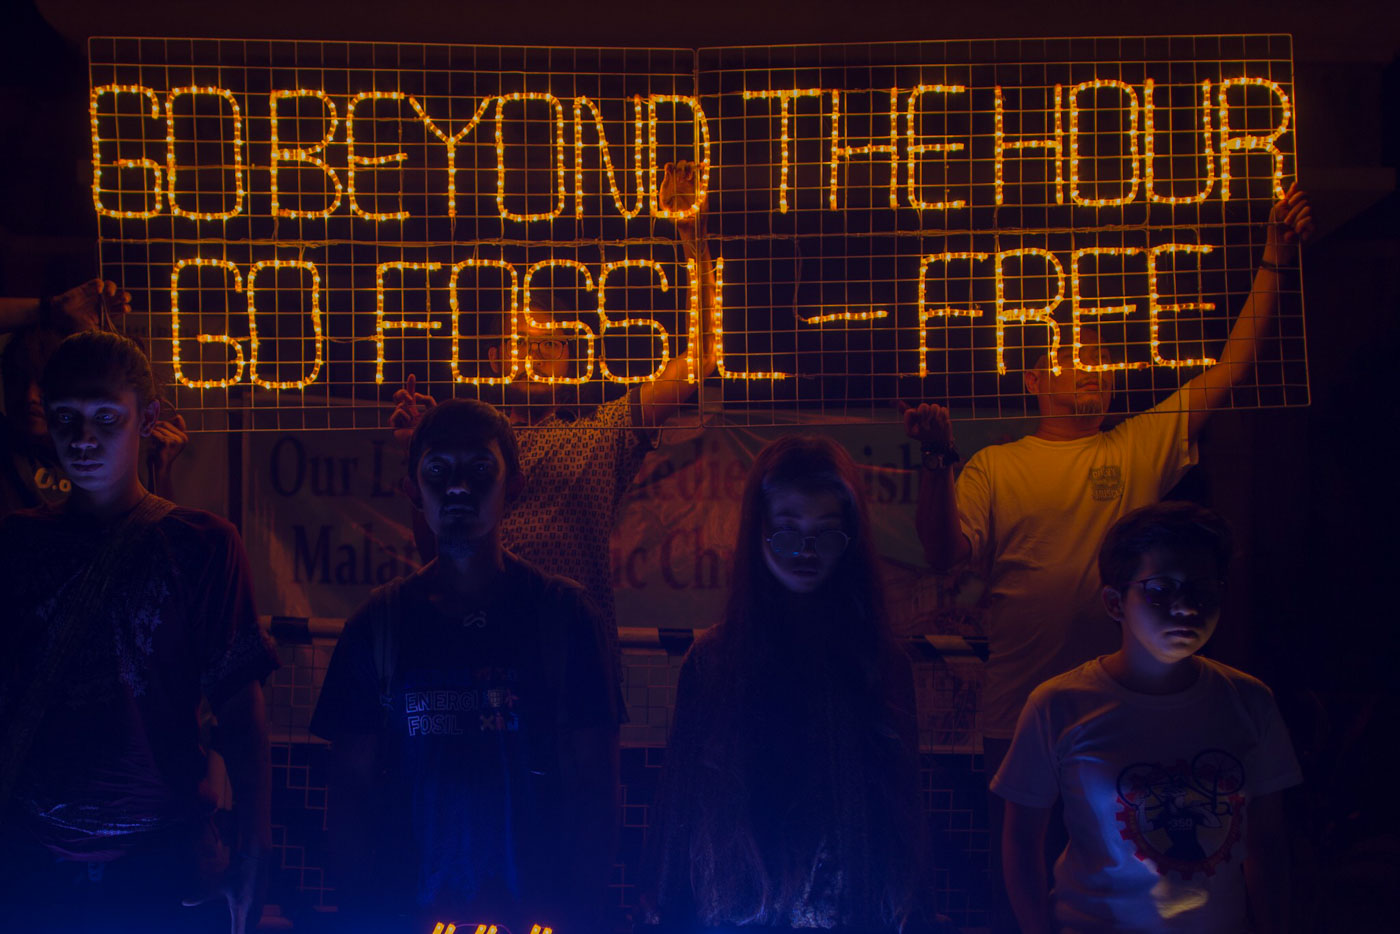 SAVE THE ENVIRONMENT. Climate activists from 350.org Pilipinas, light up LED banners at Malate Catholic Church. Photo by Maria Tan/Rappler